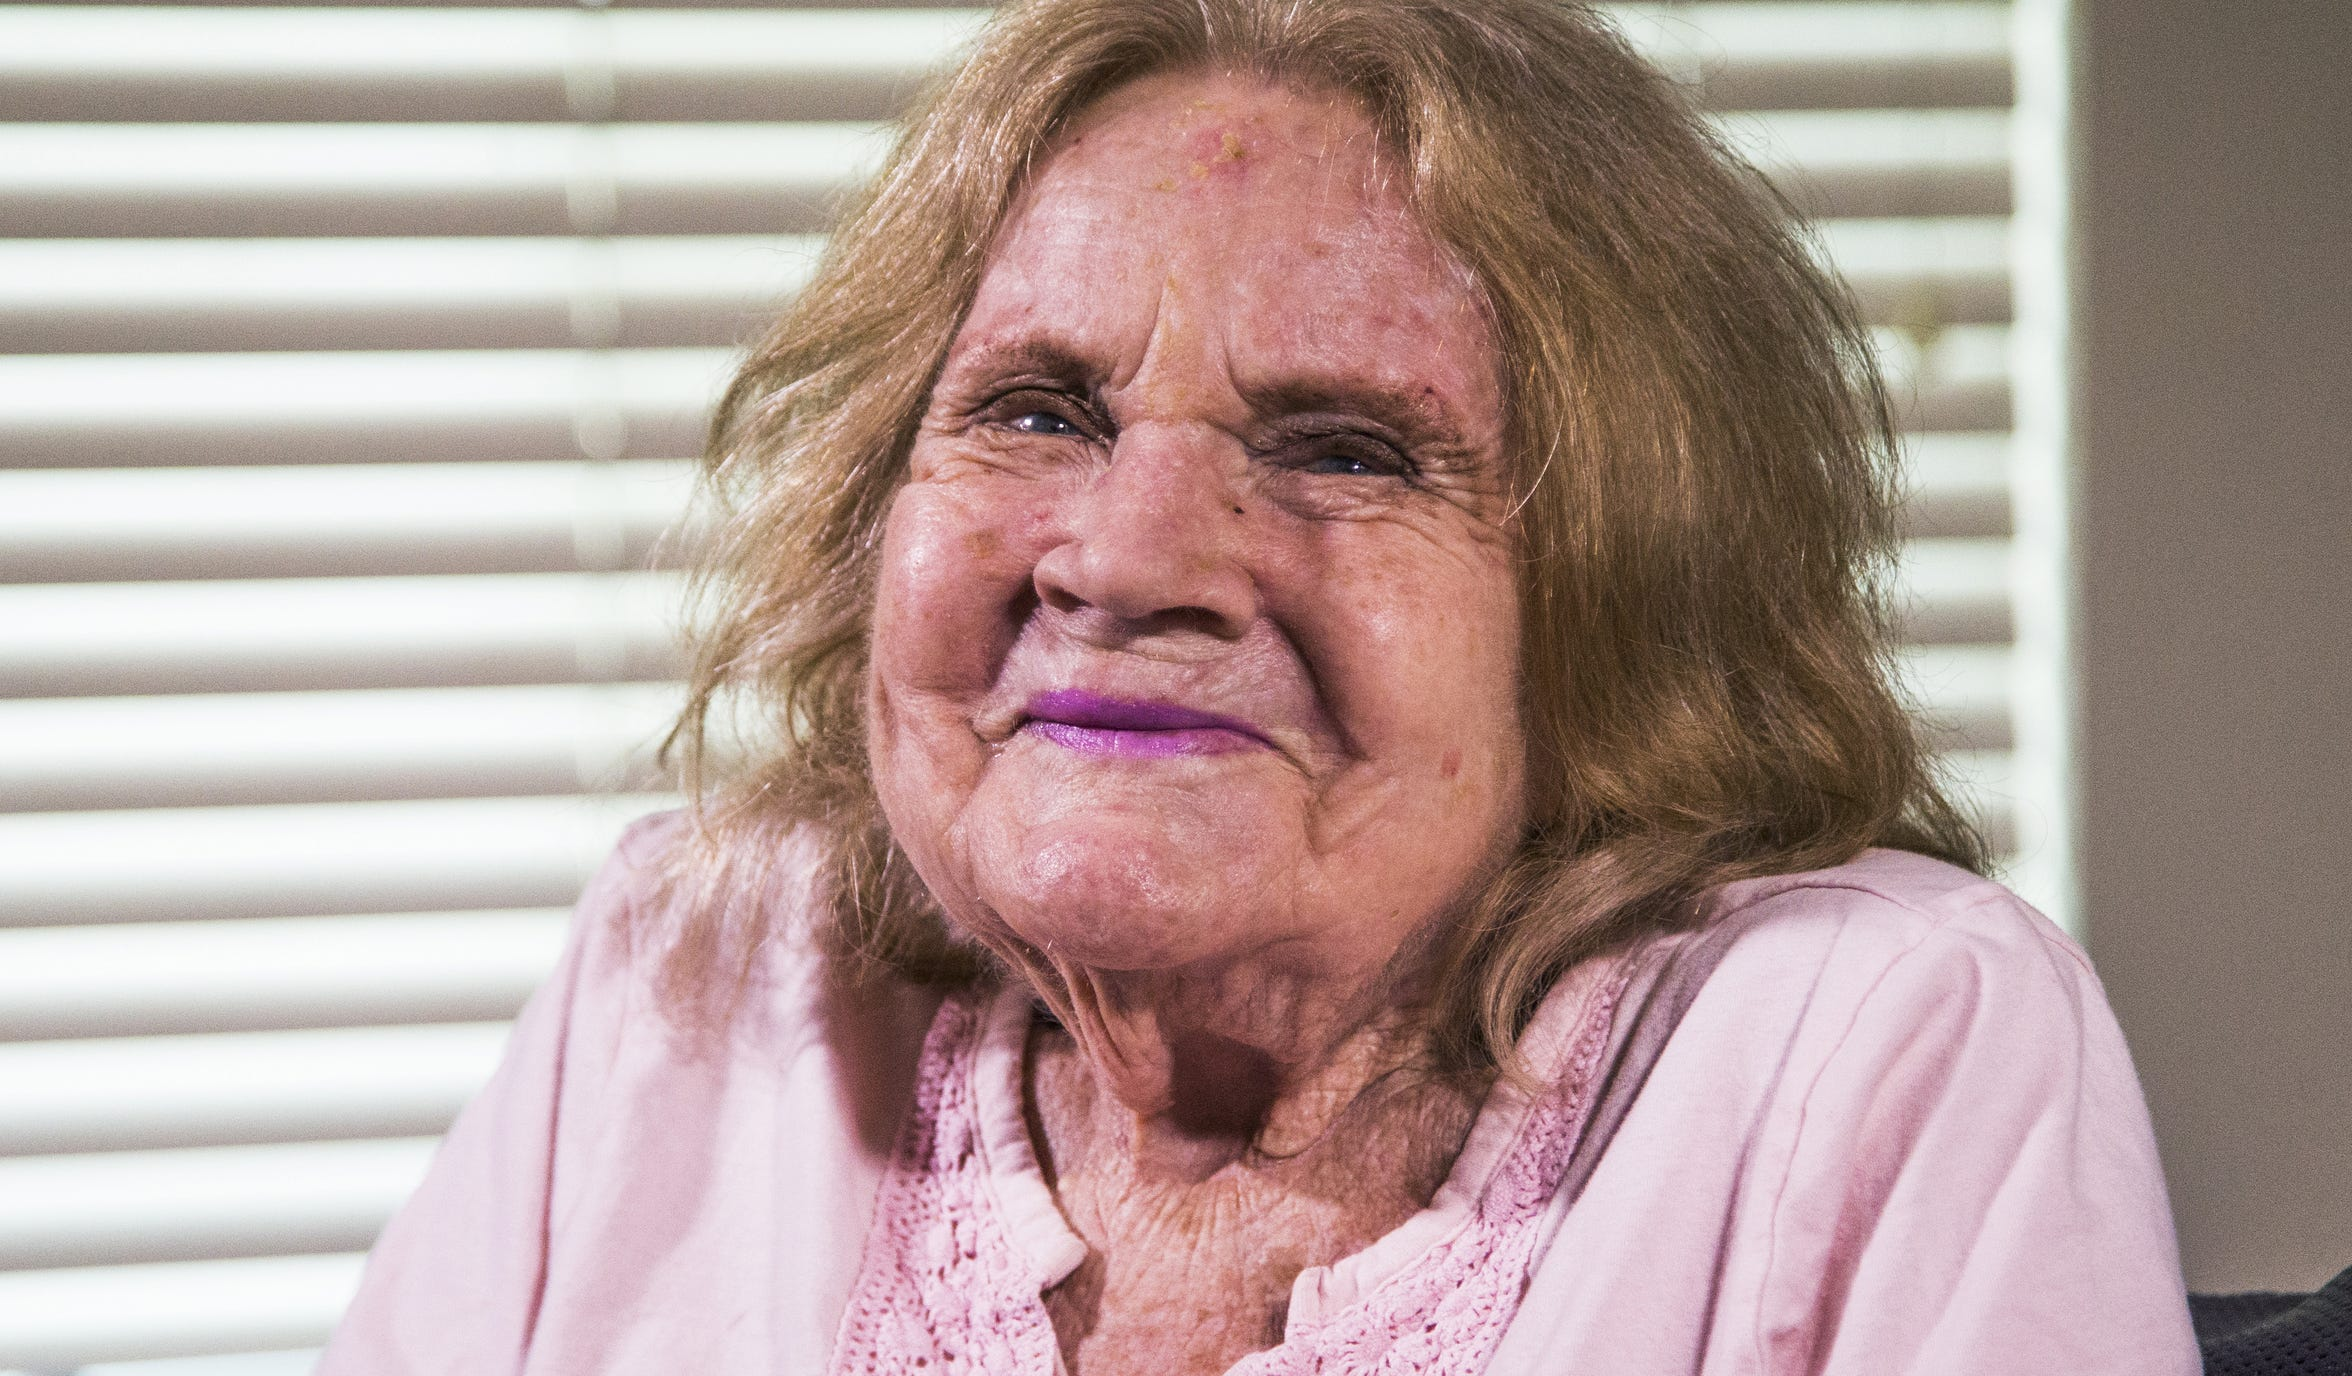 Sharon Elliott, who was found in a hatbox on the side of the road as an infant. Elliott lived at a living facility in Mesa and has died at 86. Photo taken Dec. 5, 2018.